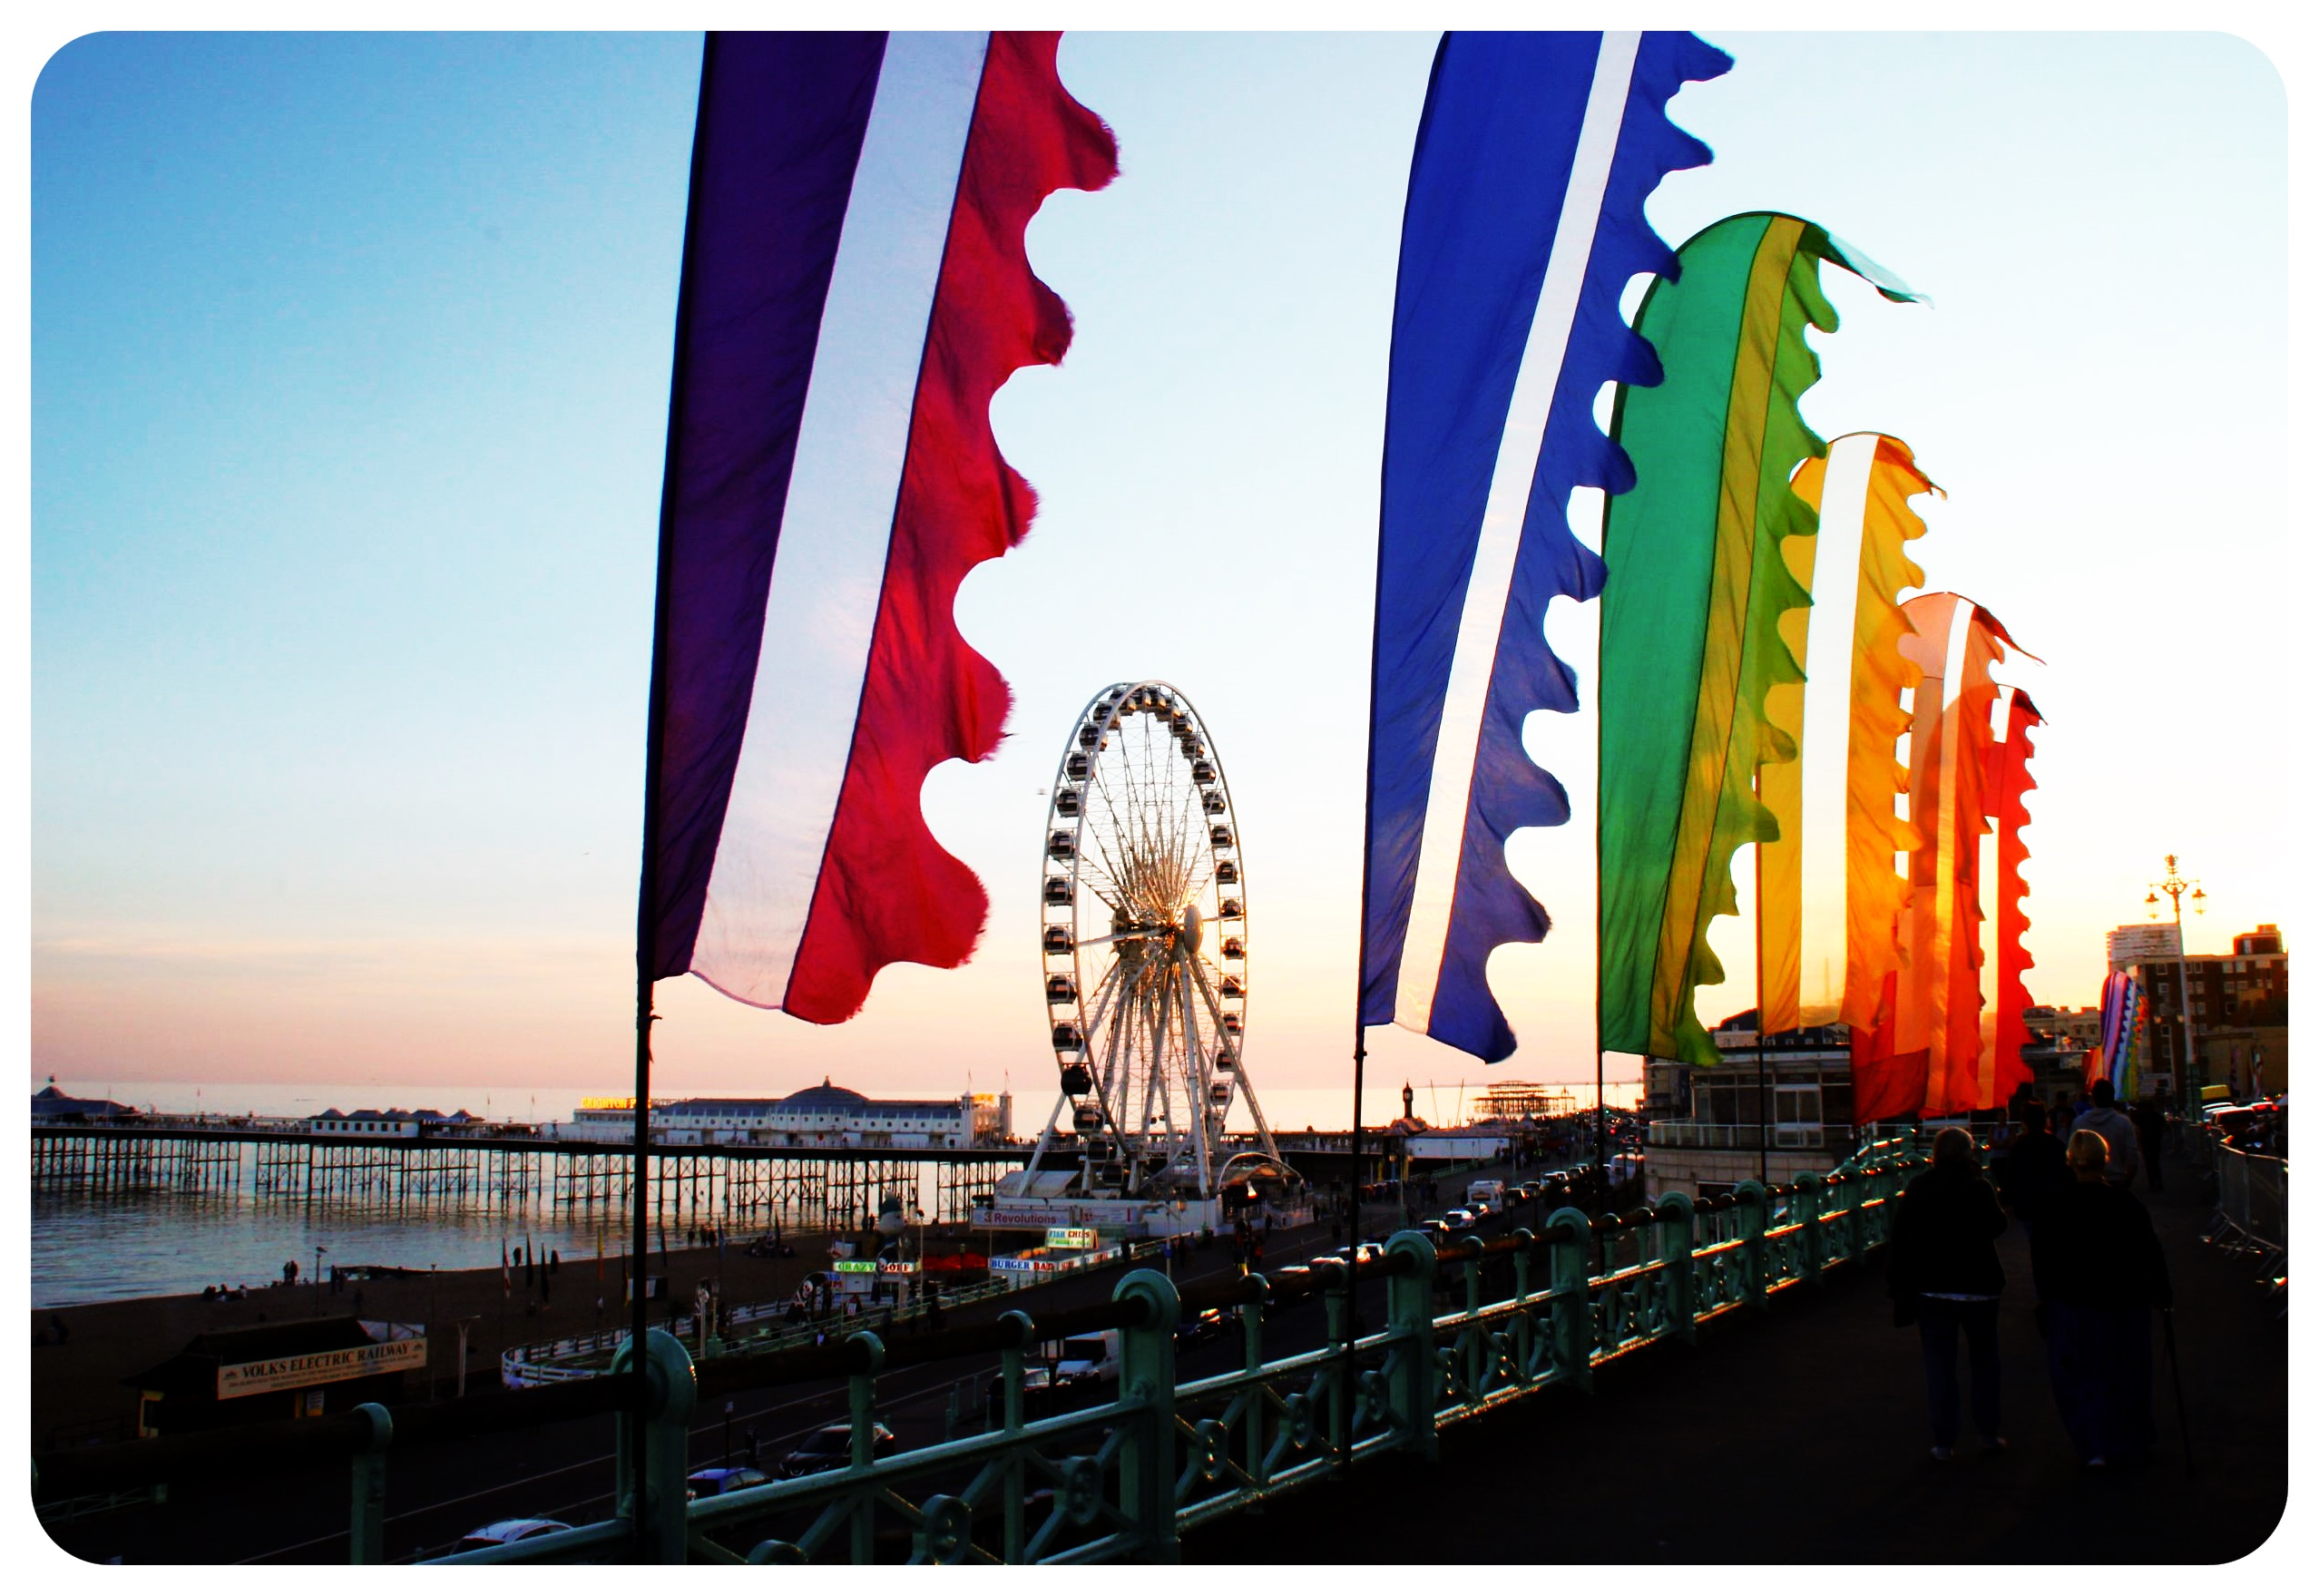 brighton rainbow flags